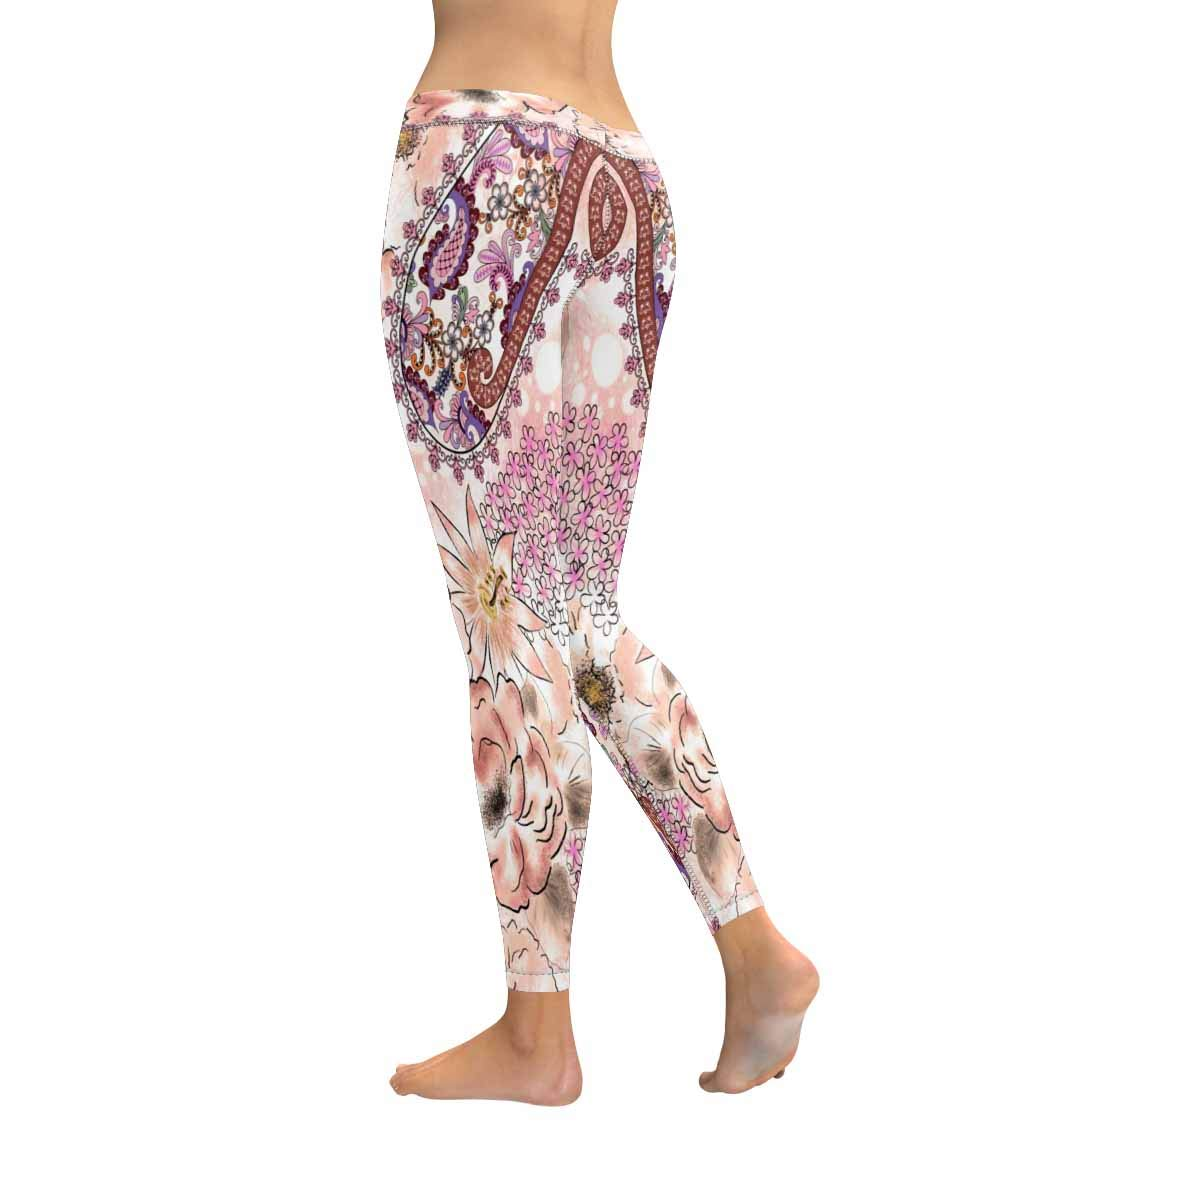 InterestPrint Womens Low Rise Leggings Small Pink Flowers Fashion Print Yoga Pants XXS-5XL